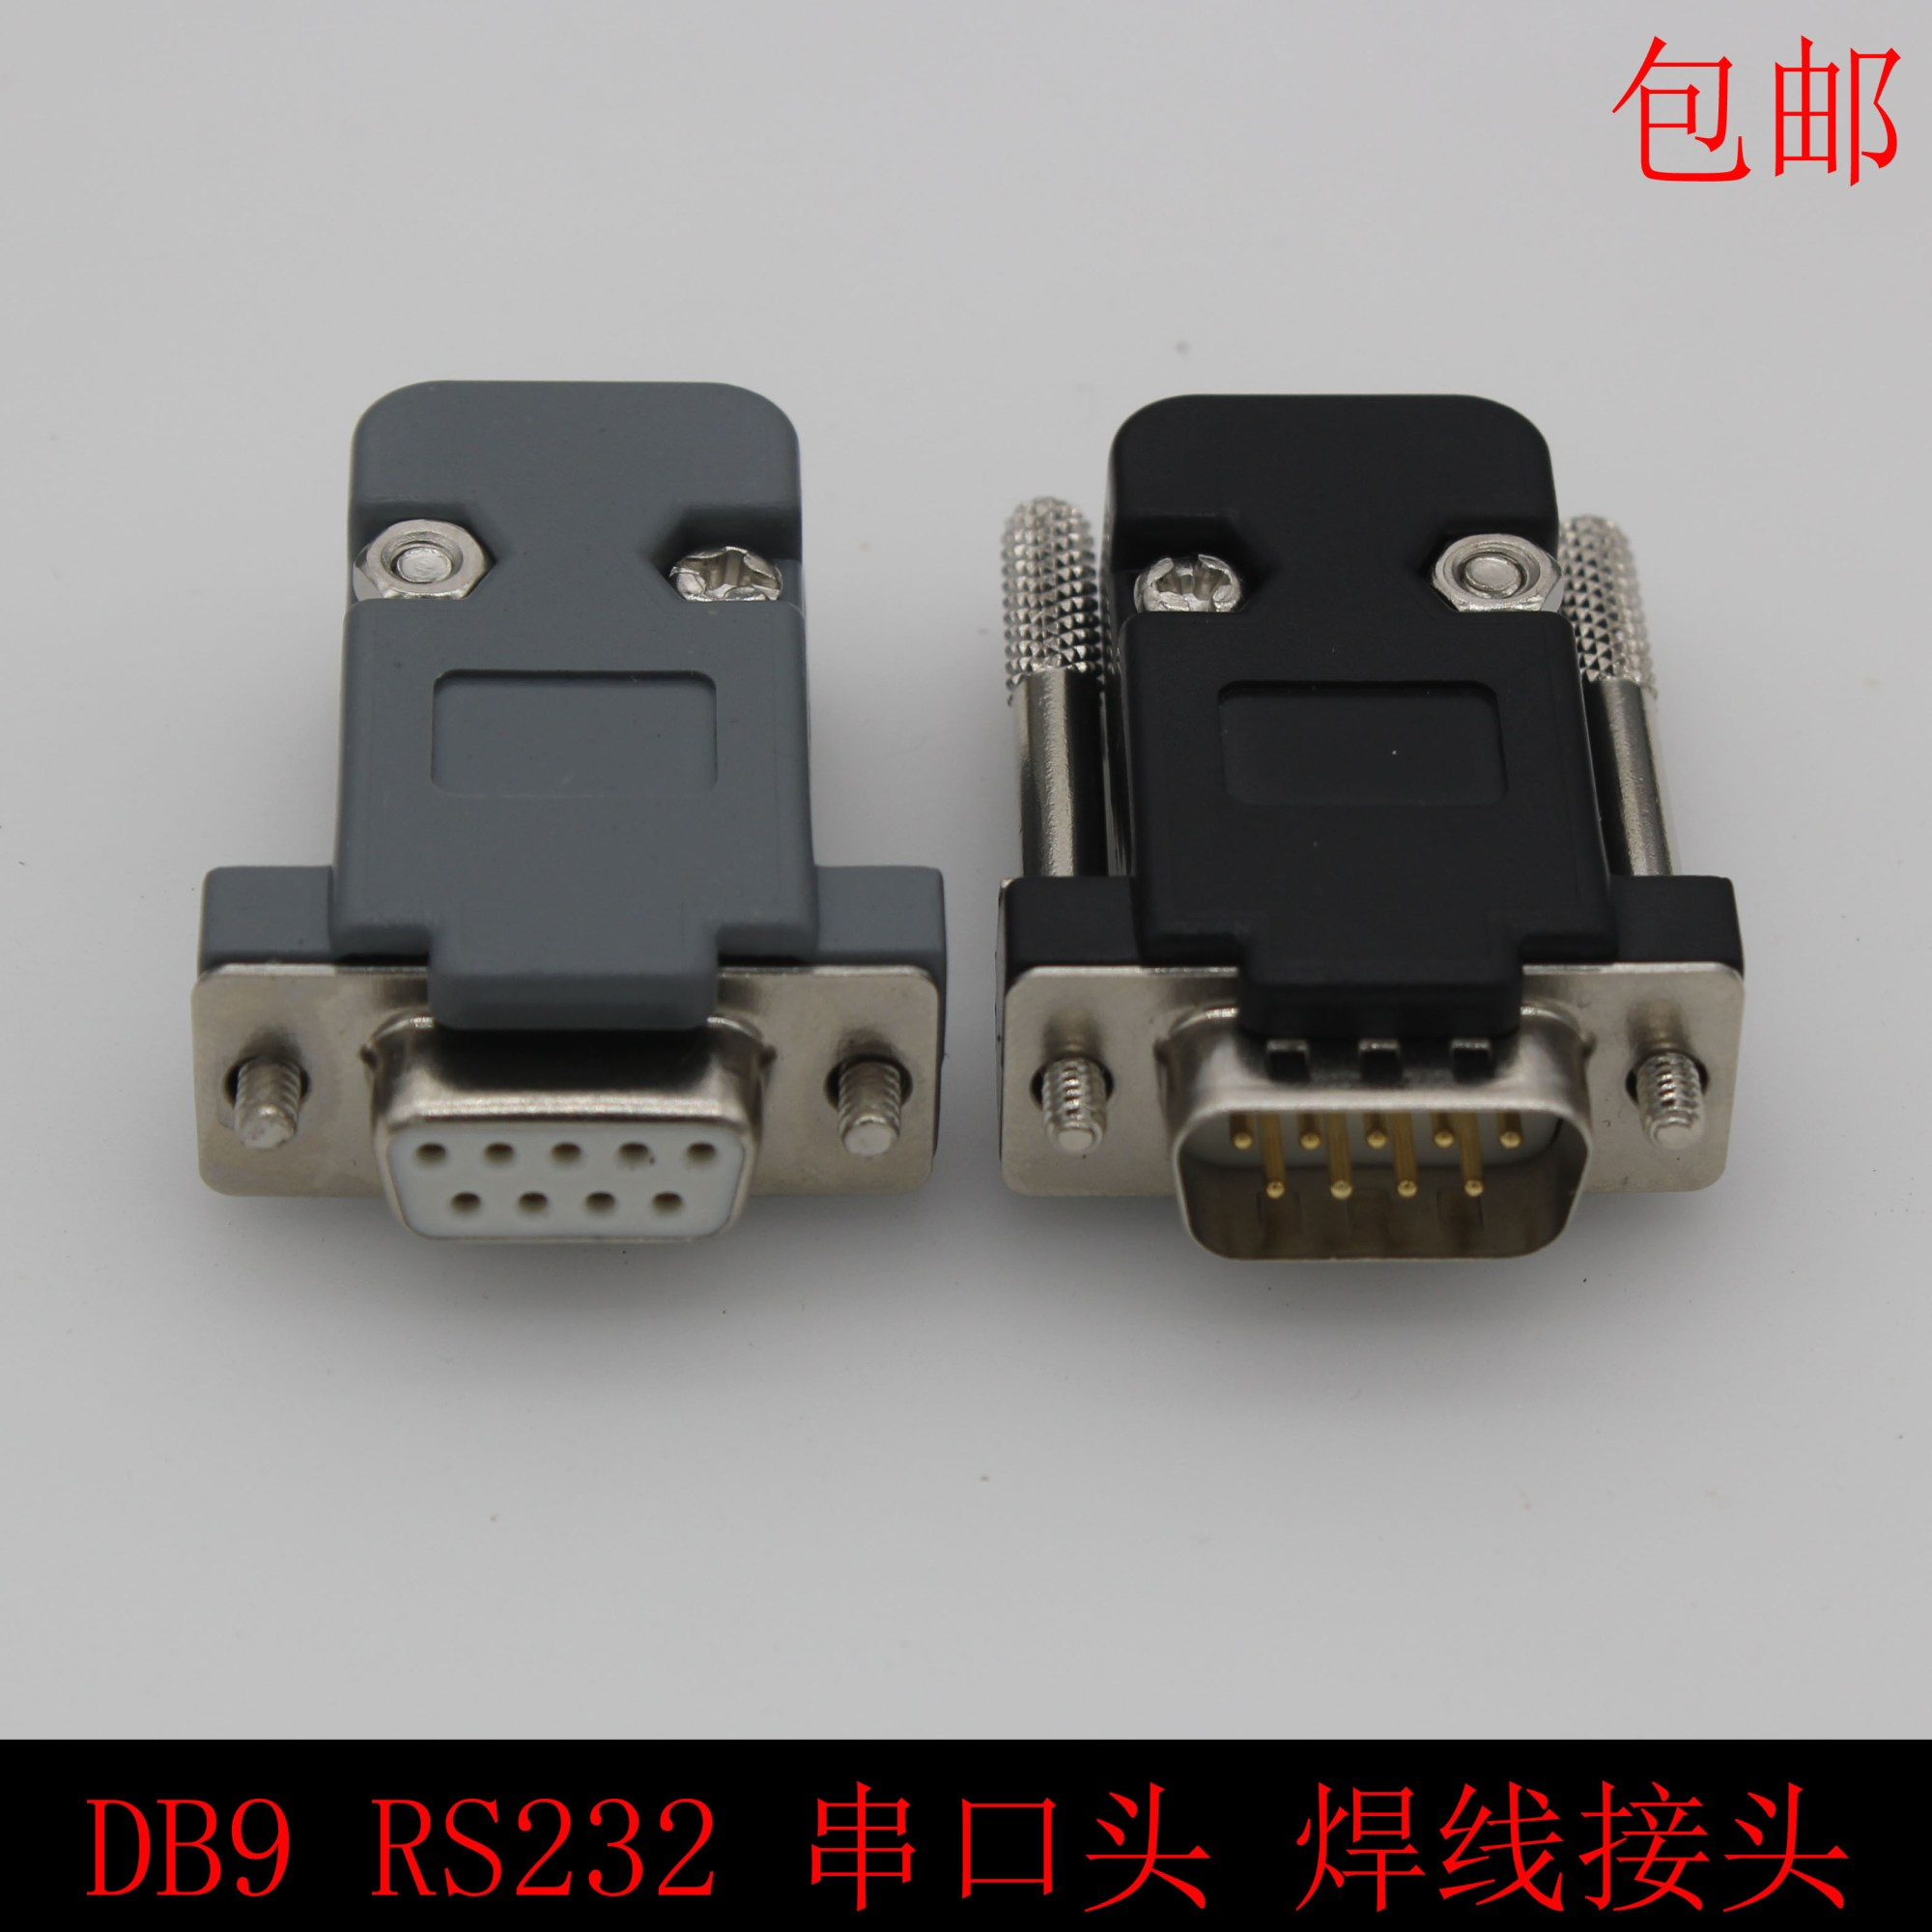 hight resolution of db9 male db9 female db9 connector plastic housing rs232 serial plug 9 pin serial wire bonding